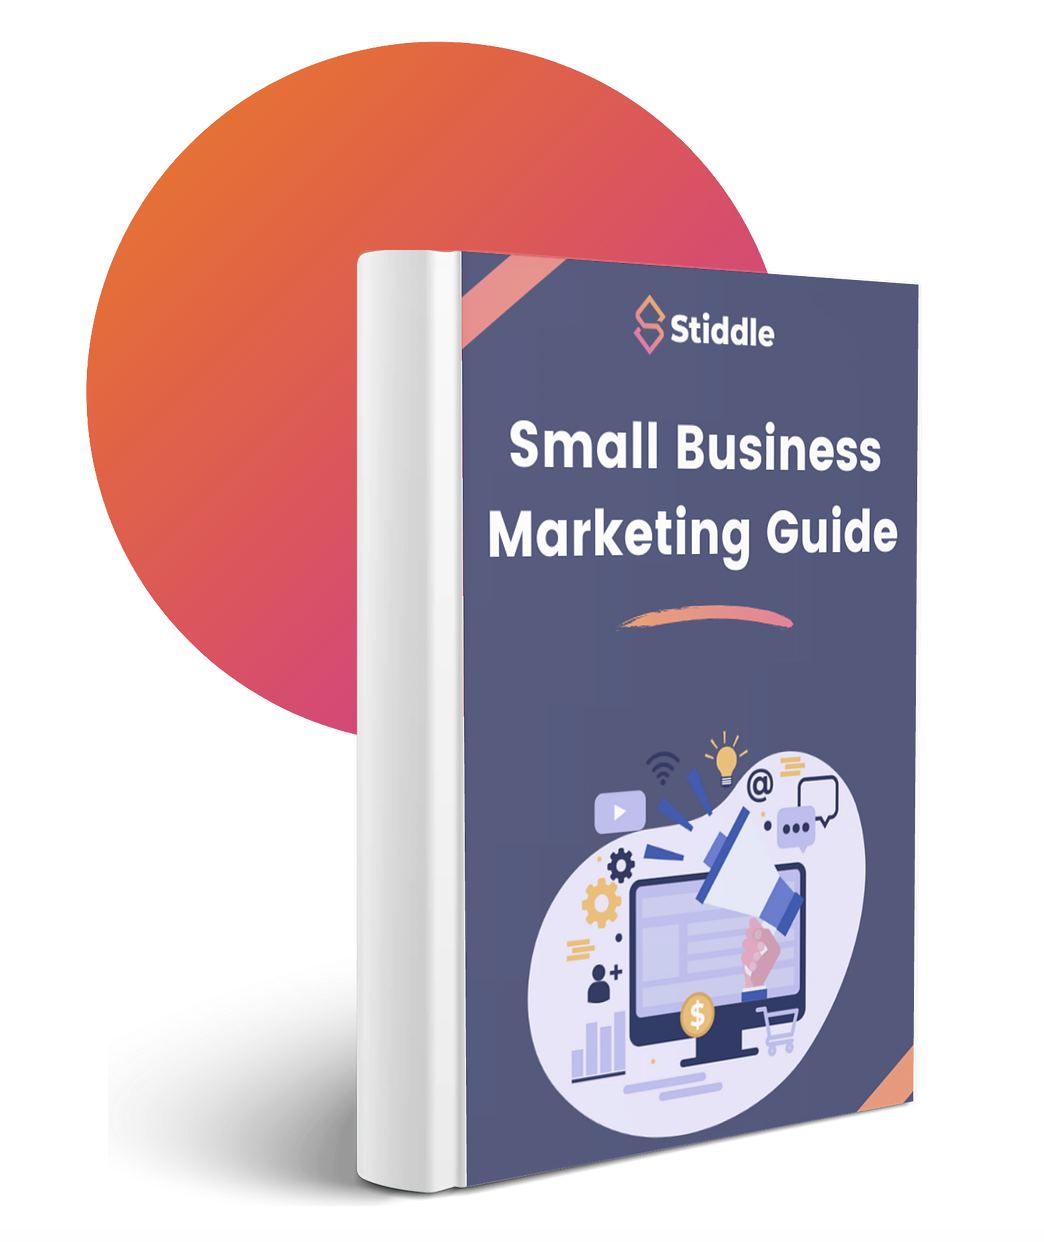 Small Business Marketing Guide Ebook [FREE DOWNLOAD]